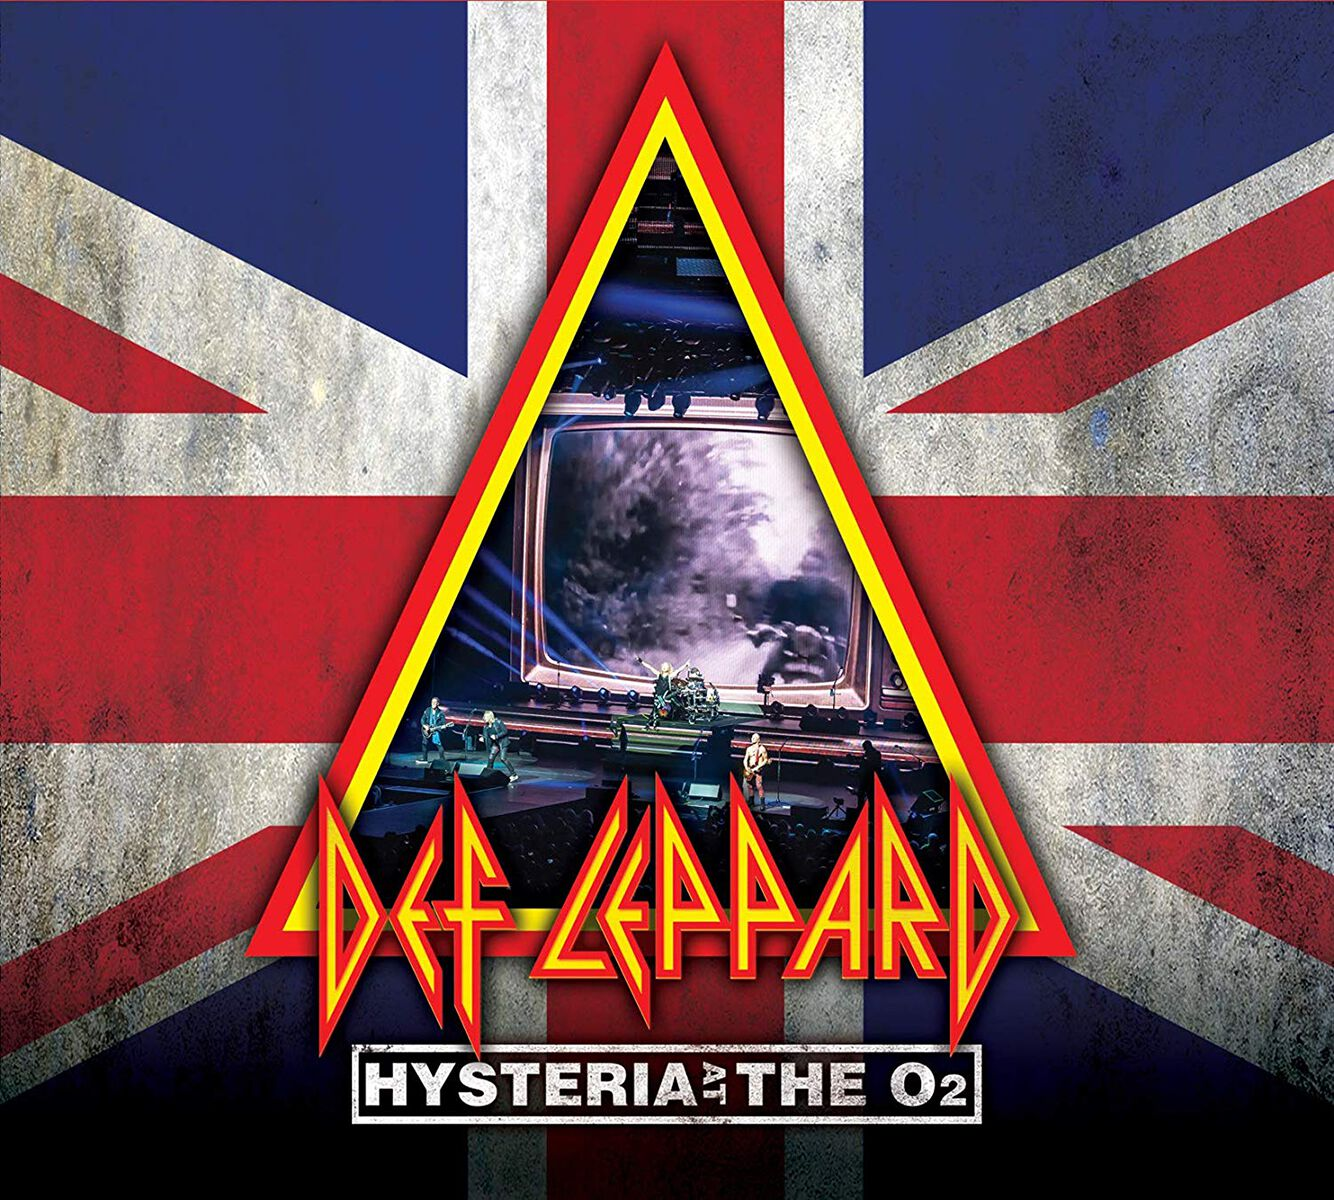 Def Leppard  Hysteria at the O2 - Live  Blu-ray & 2-CD  Standard